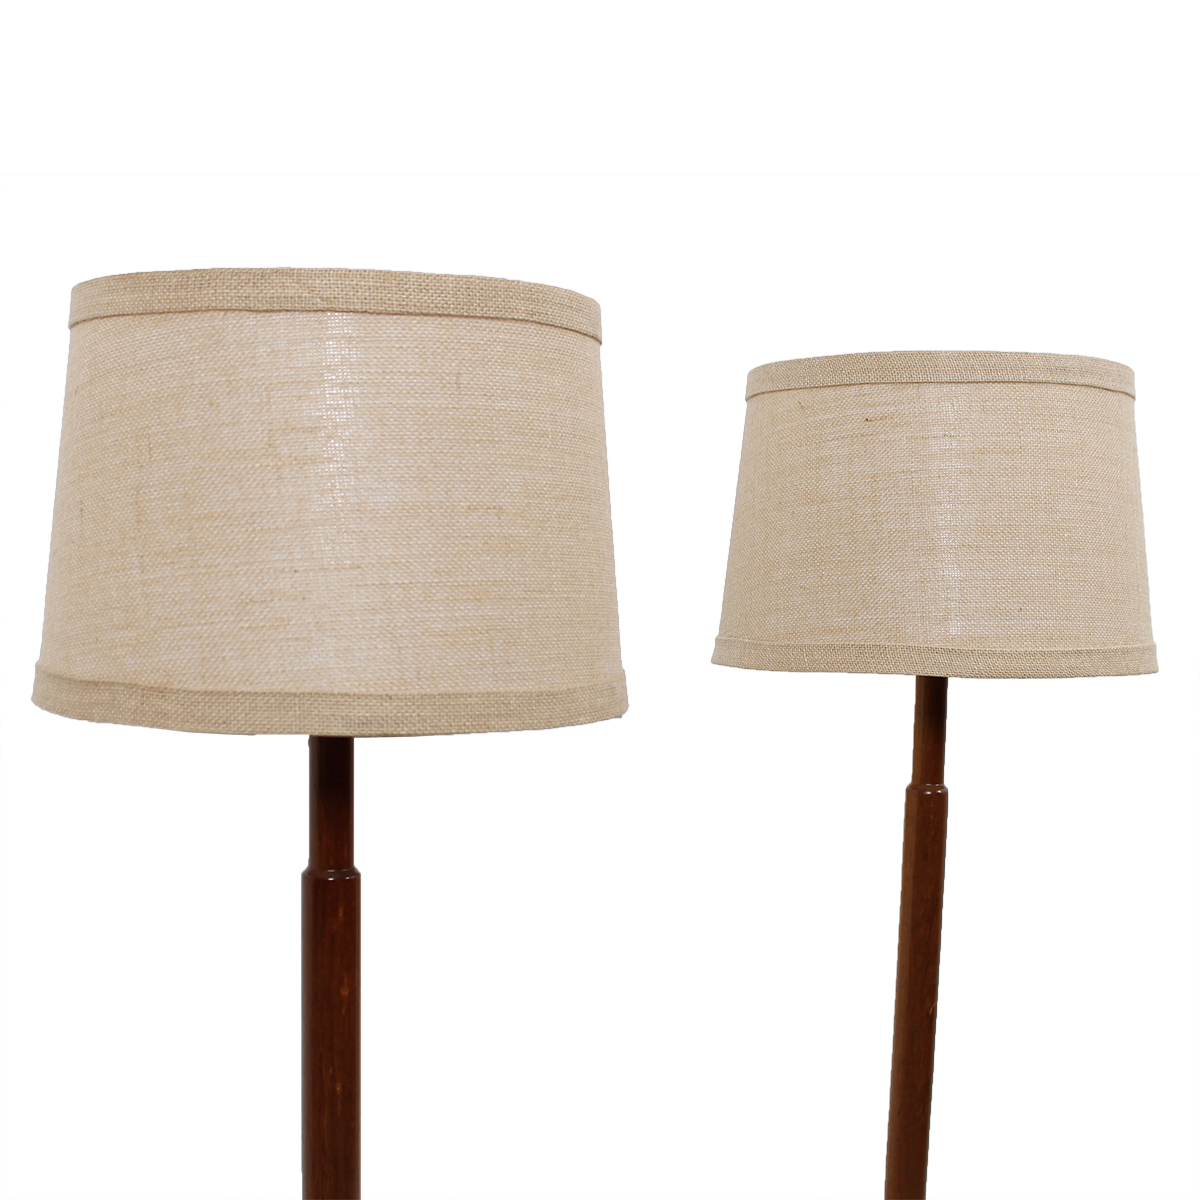 Pair of Martz – Marshall Studios Wood Floor Lamps